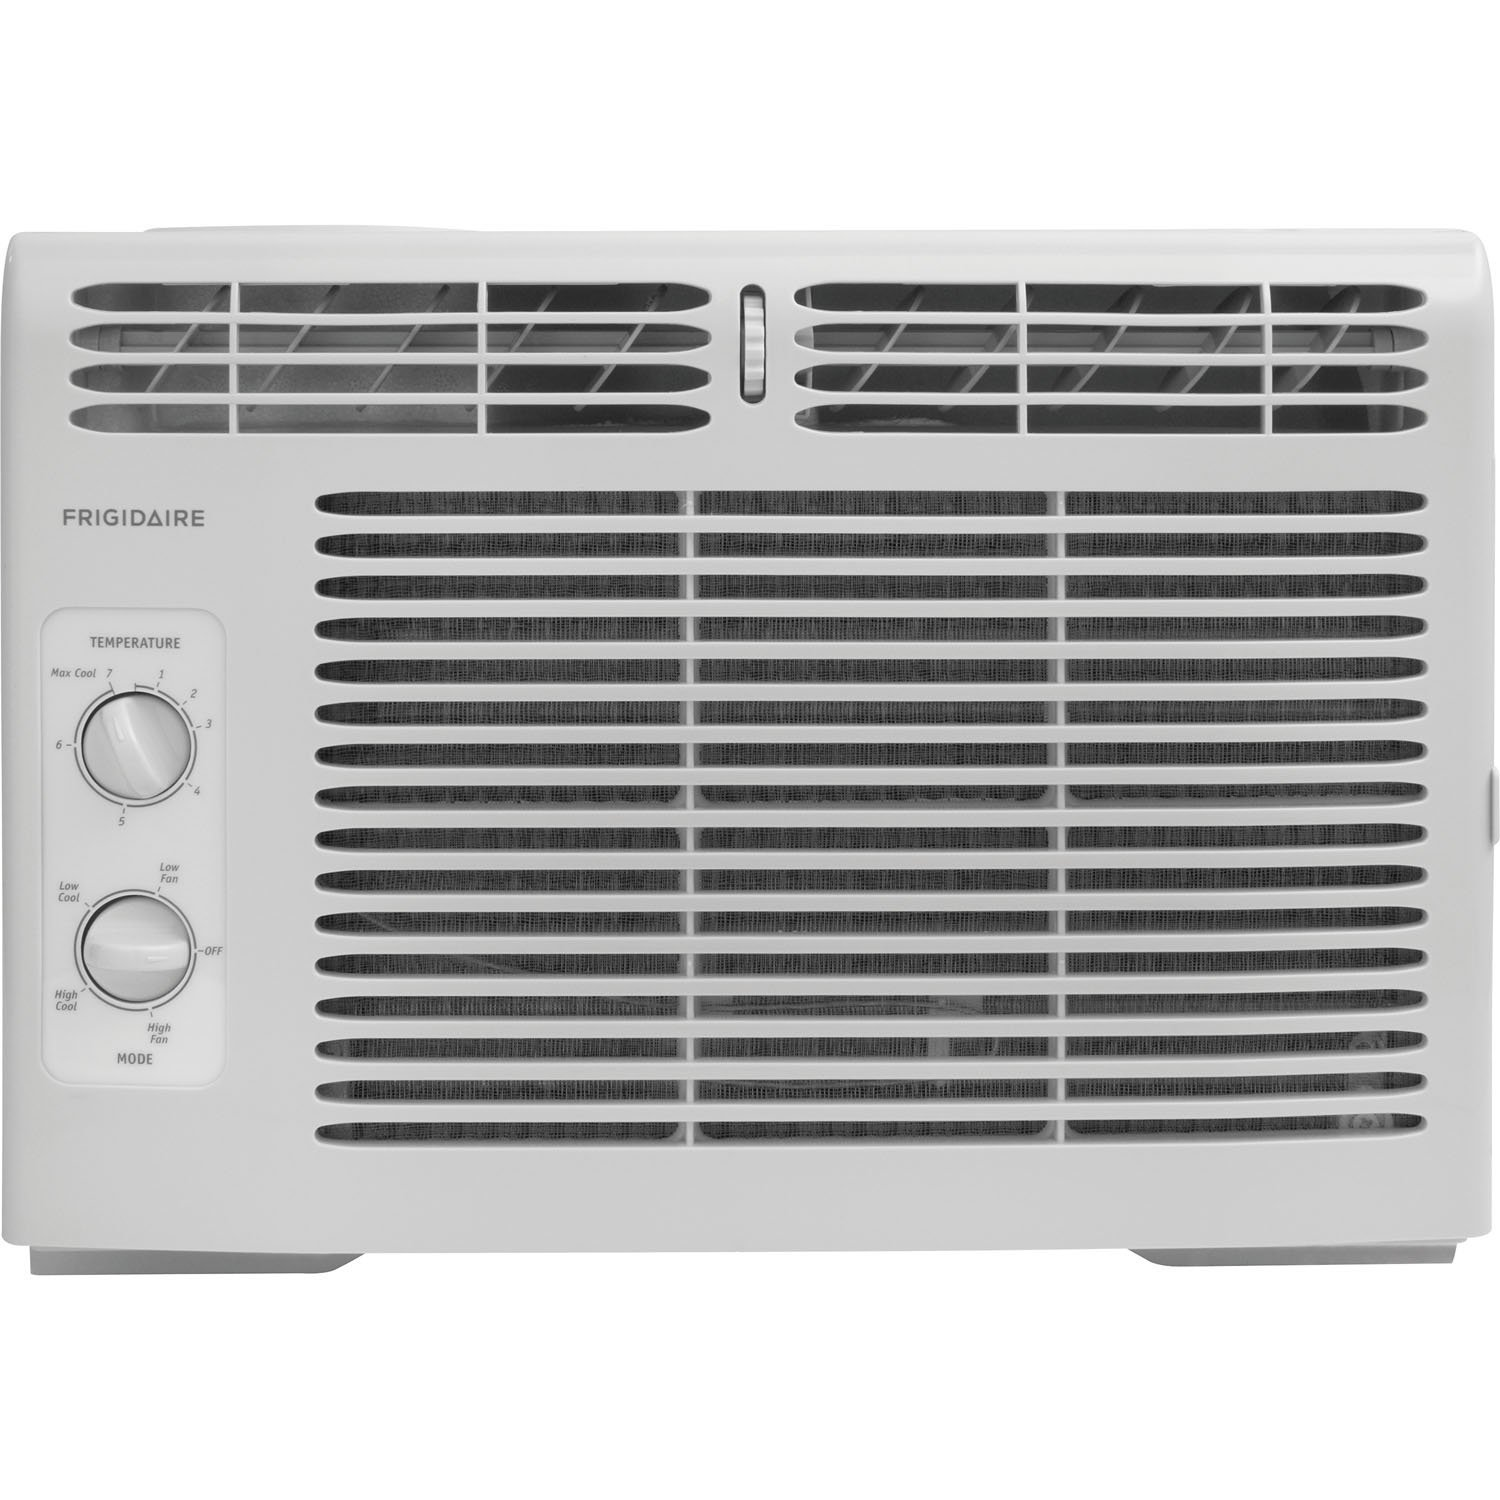 Frigidaire FFRA0511R1 5, 000 BTU 115V Window-Mounted Mini-Compact Air Conditioner with Mechanical Controls by Frigidaire (Image #12)